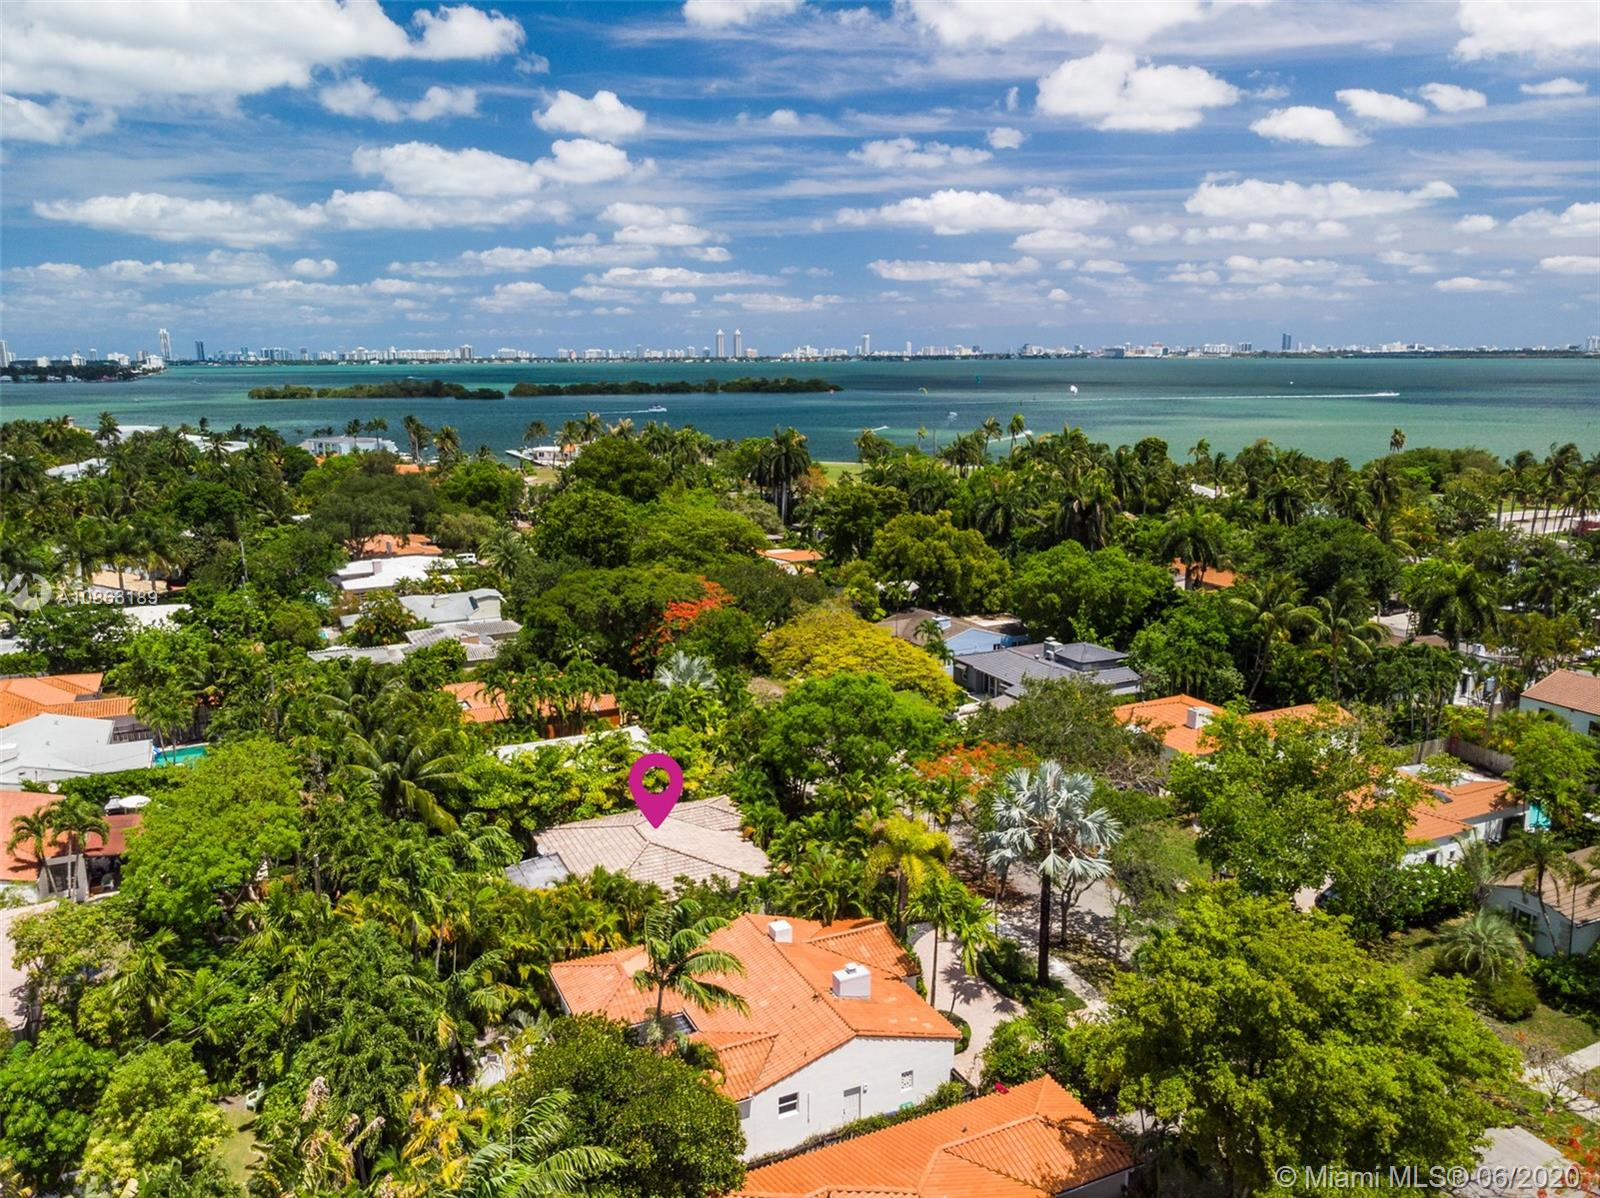 881 NE 72nd Ter, Miami, Florida 33138, 2 Bedrooms Bedrooms, ,2 BathroomsBathrooms,Residential,For Sale,881 NE 72nd Ter,A10863189